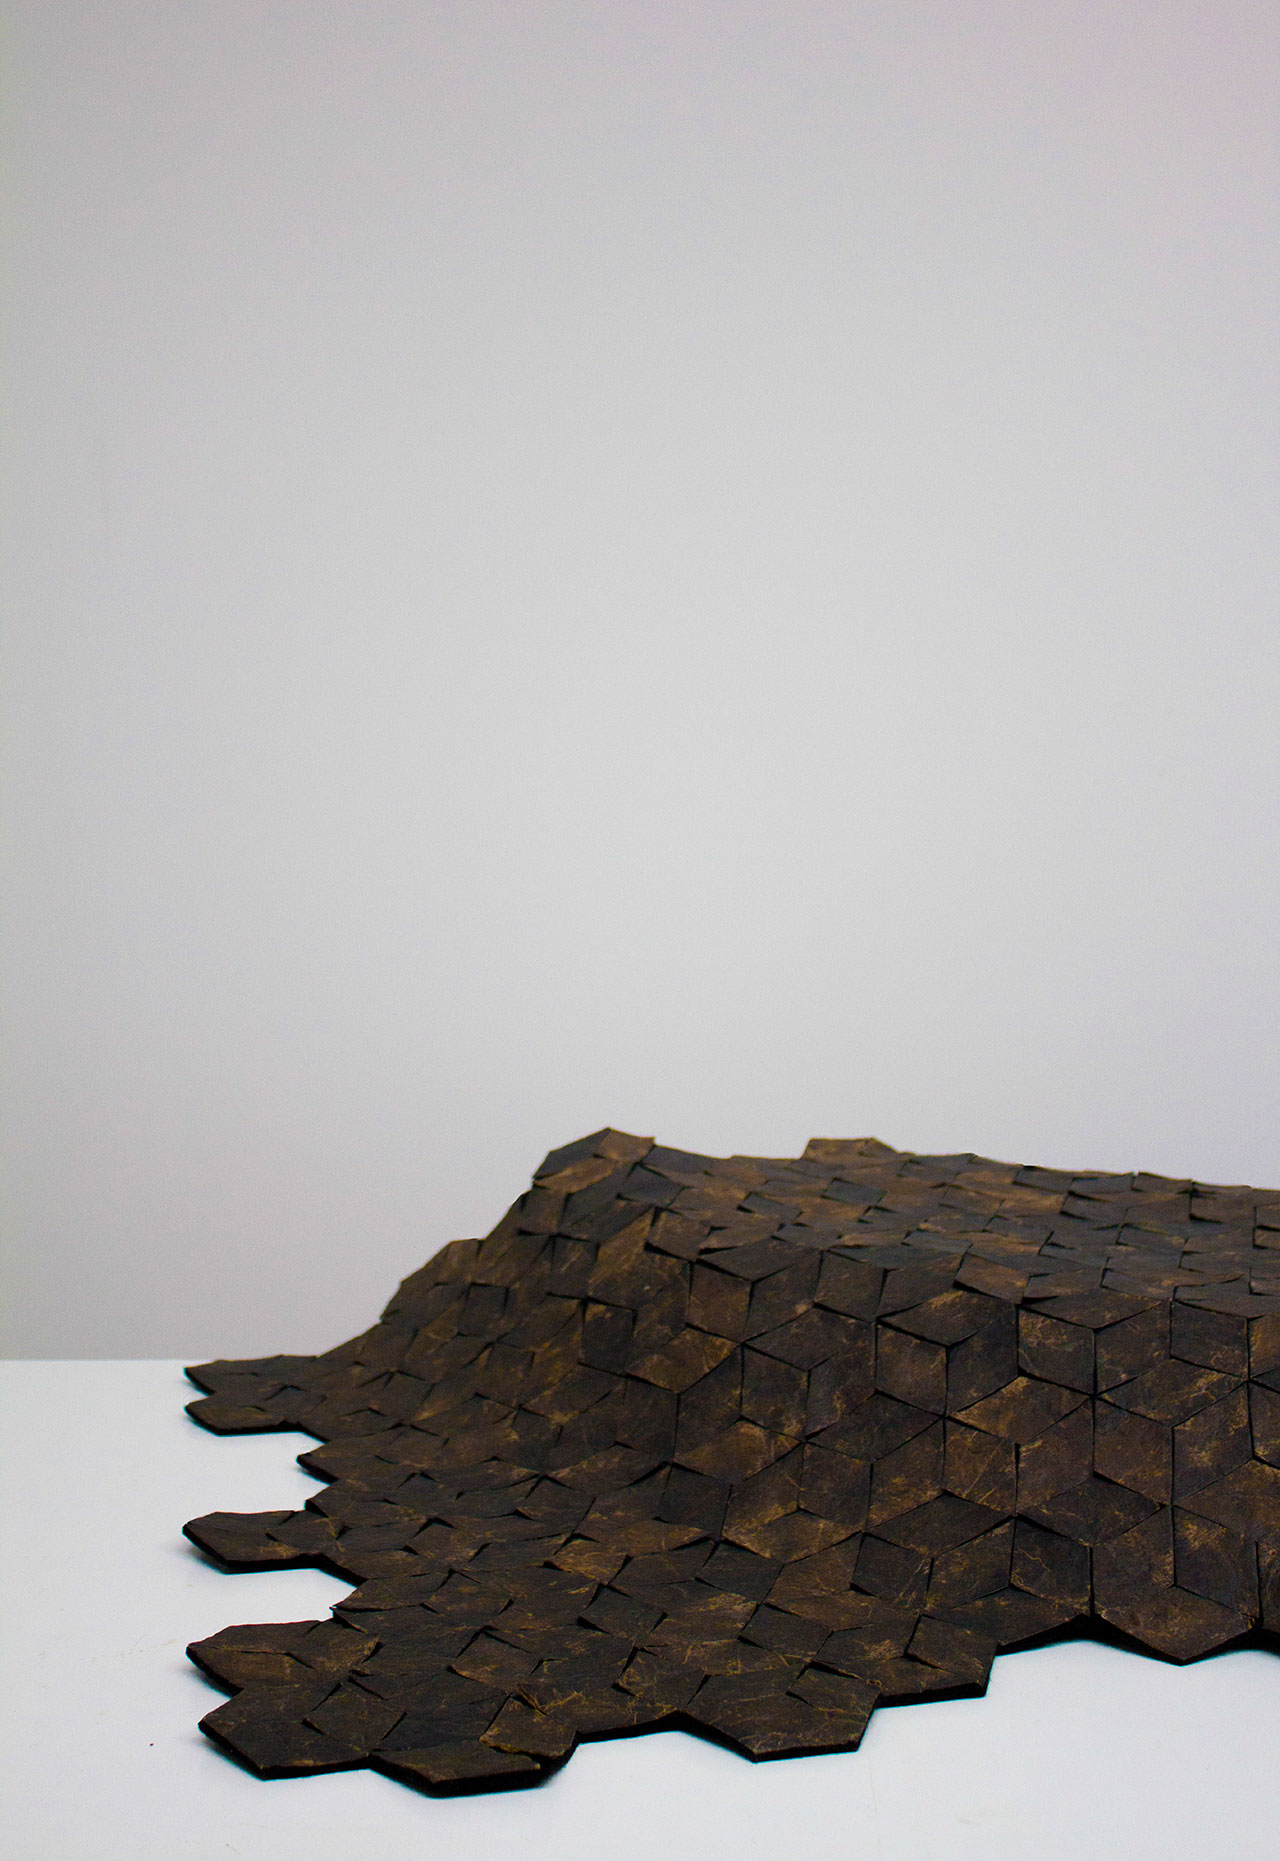 Marlène Huissoud, From Insects, Silk rug. Hundred of lozenges made out of the 'Wooden Leather', assembled together to create a flexible surface. Photo by Yesenia Tibault Picazo.